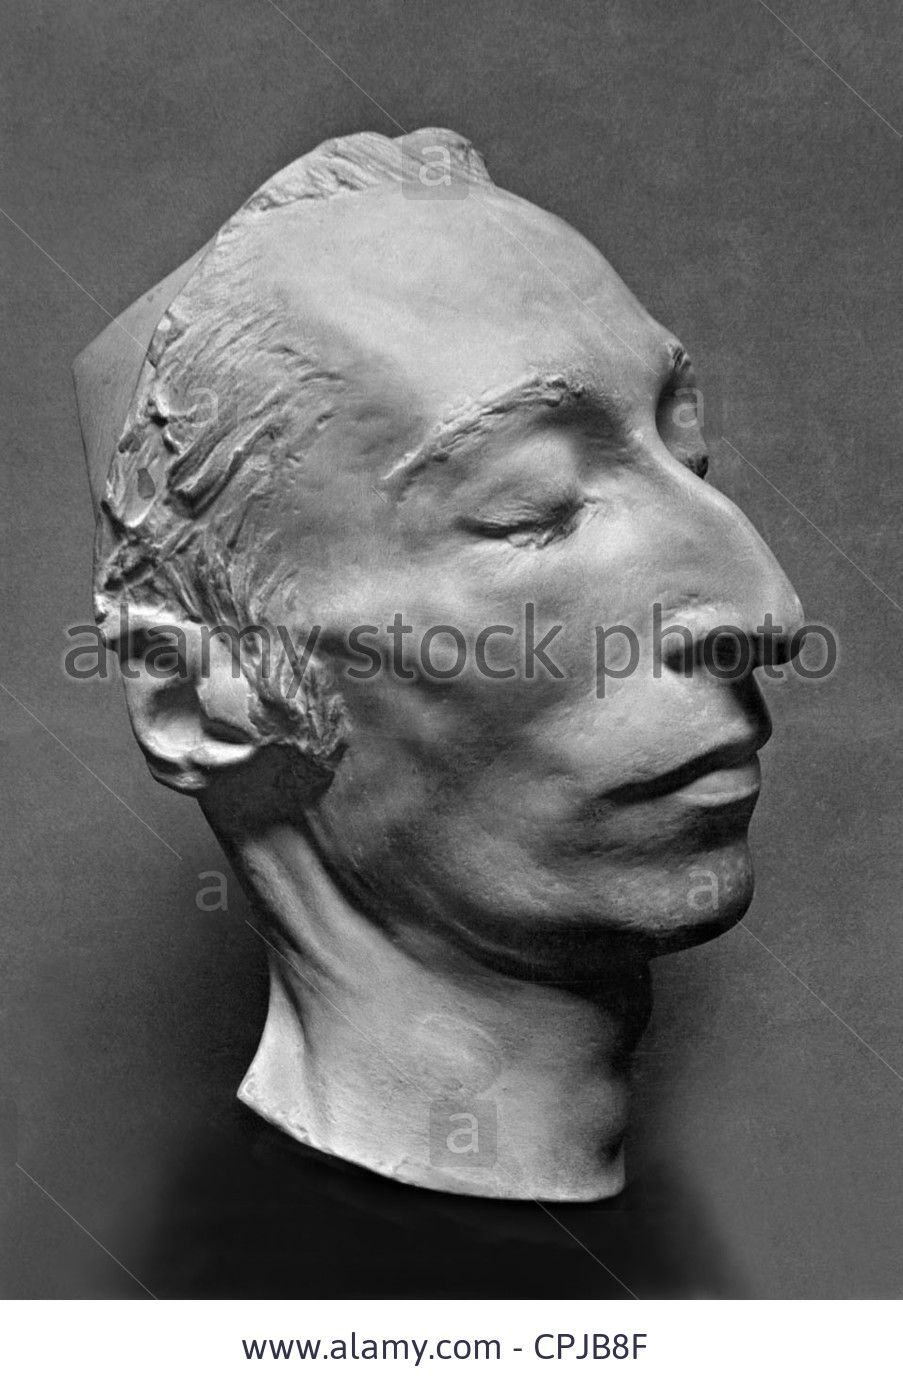 The death mask of Vysotsky was sold for 55 thousand euros. 25.11.2015 36